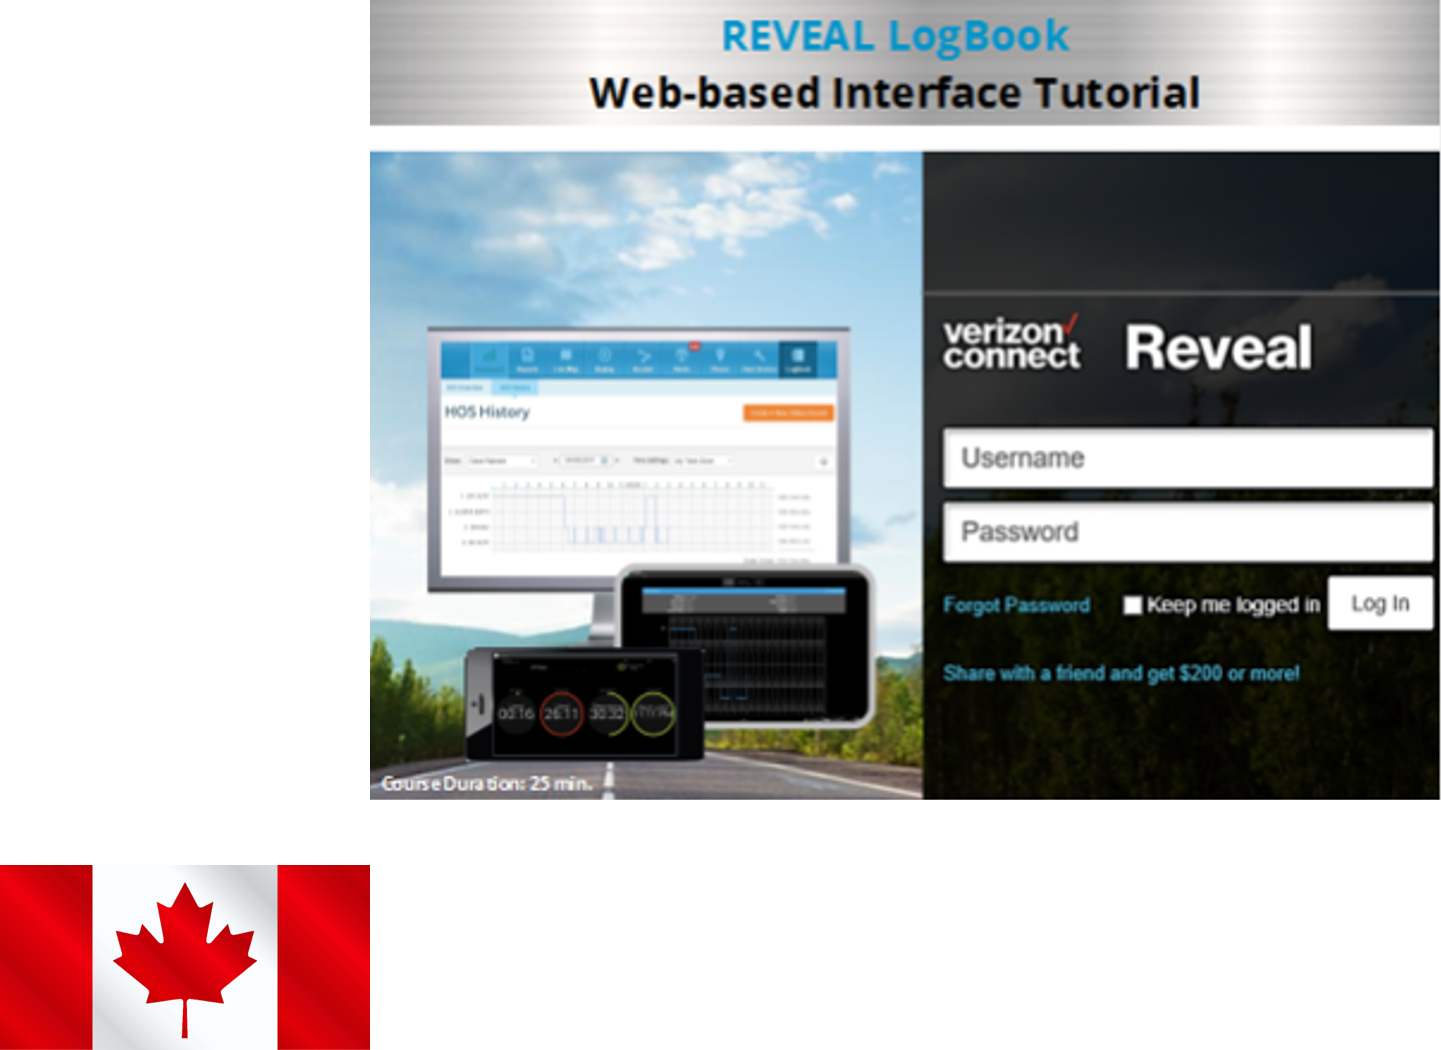 Reveal LogBook Web-based Interface eTutorial (AOBRD-Compliant)